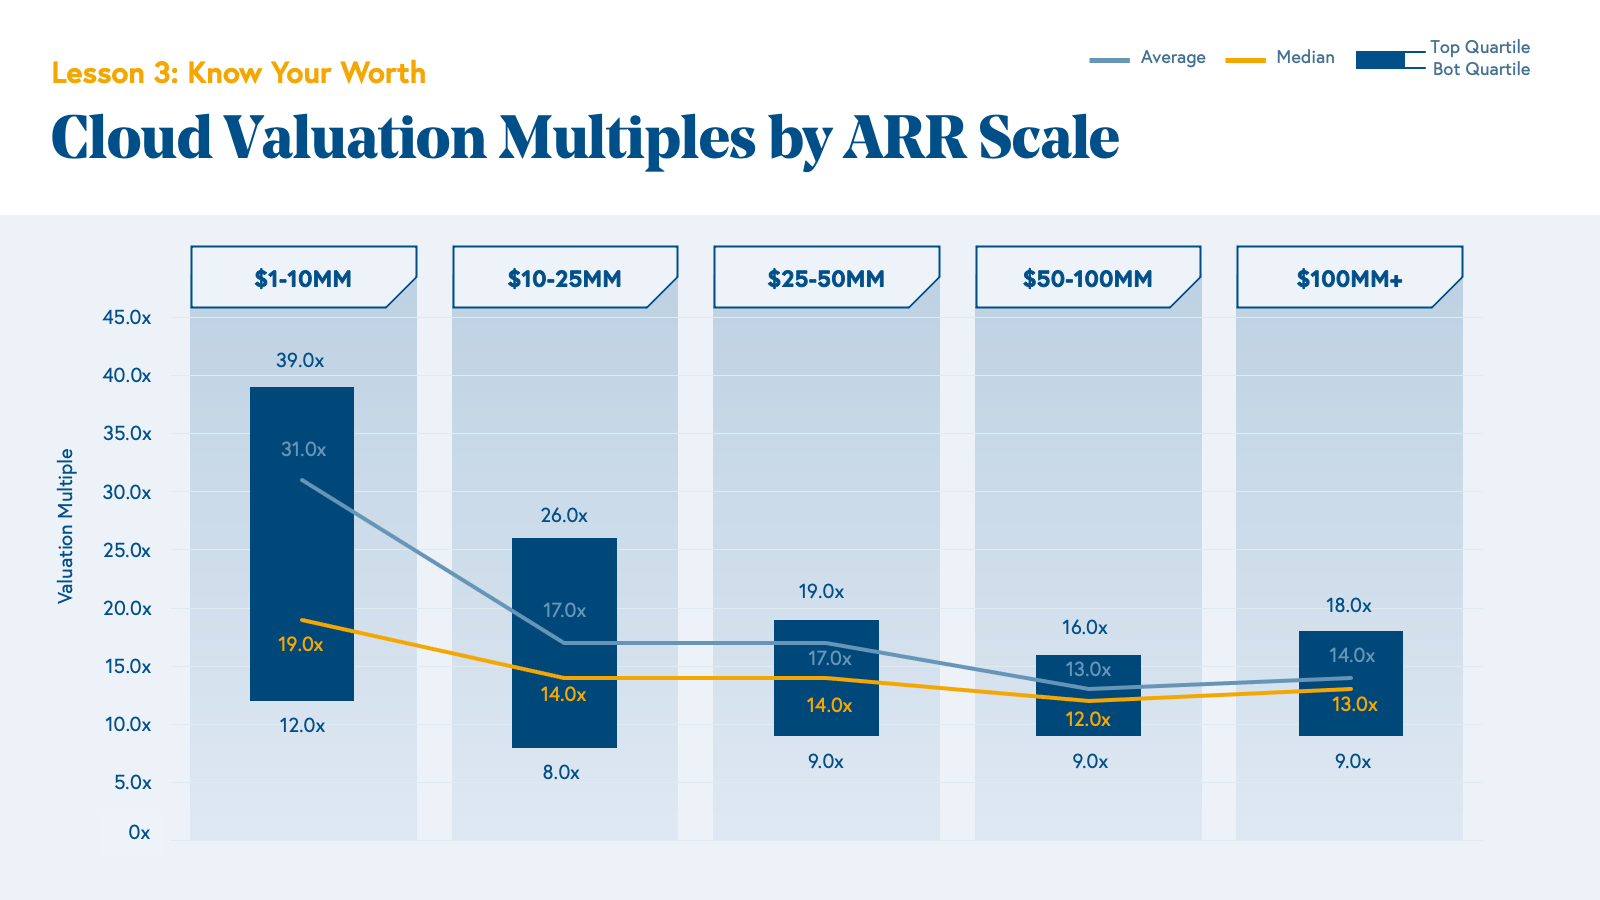 Cloud Valuation Multiples by ARR Scale Chart